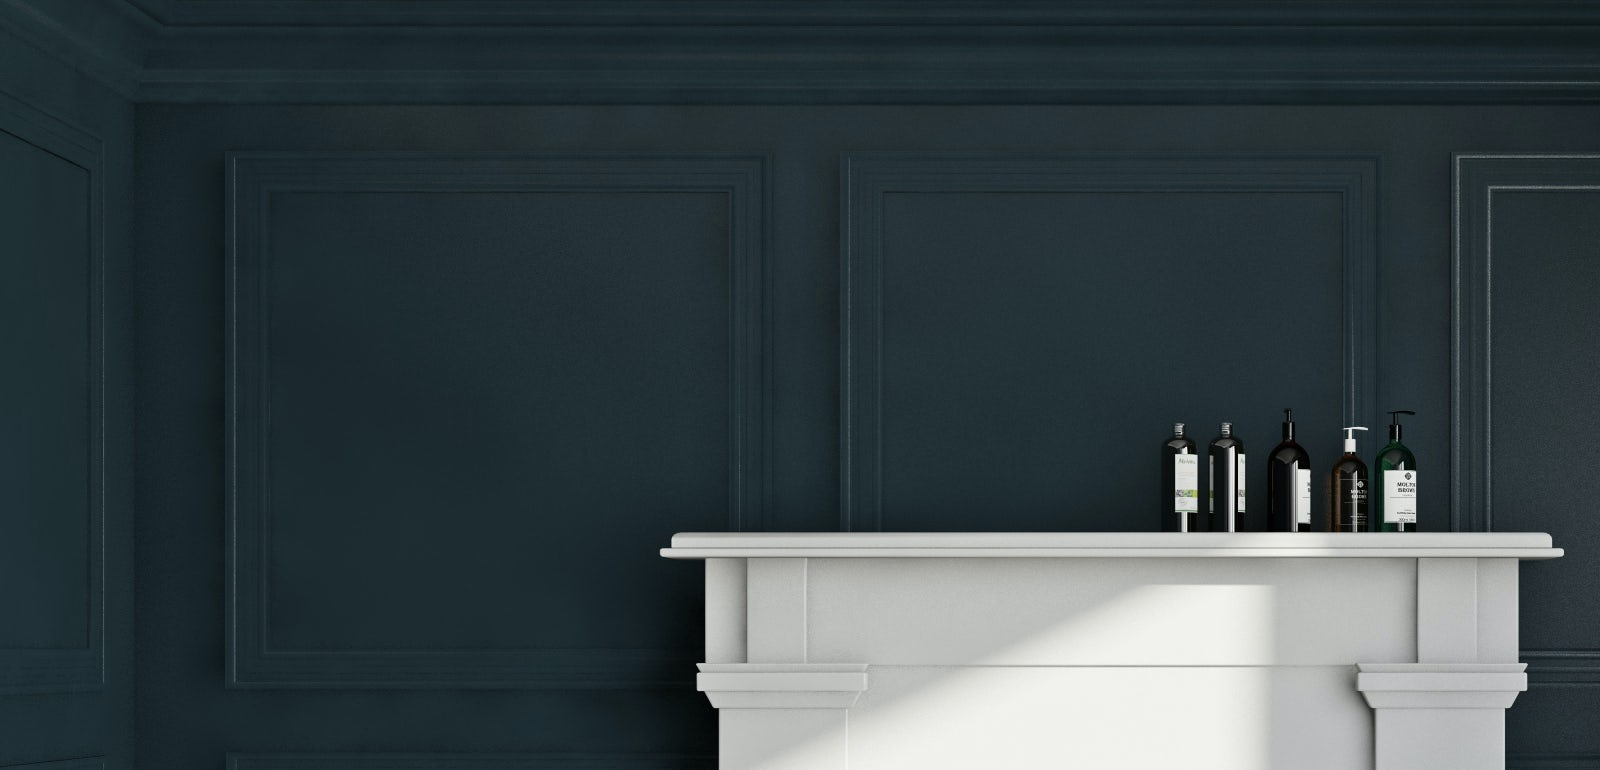 Spring/Summer style trends bring darker tones to your home